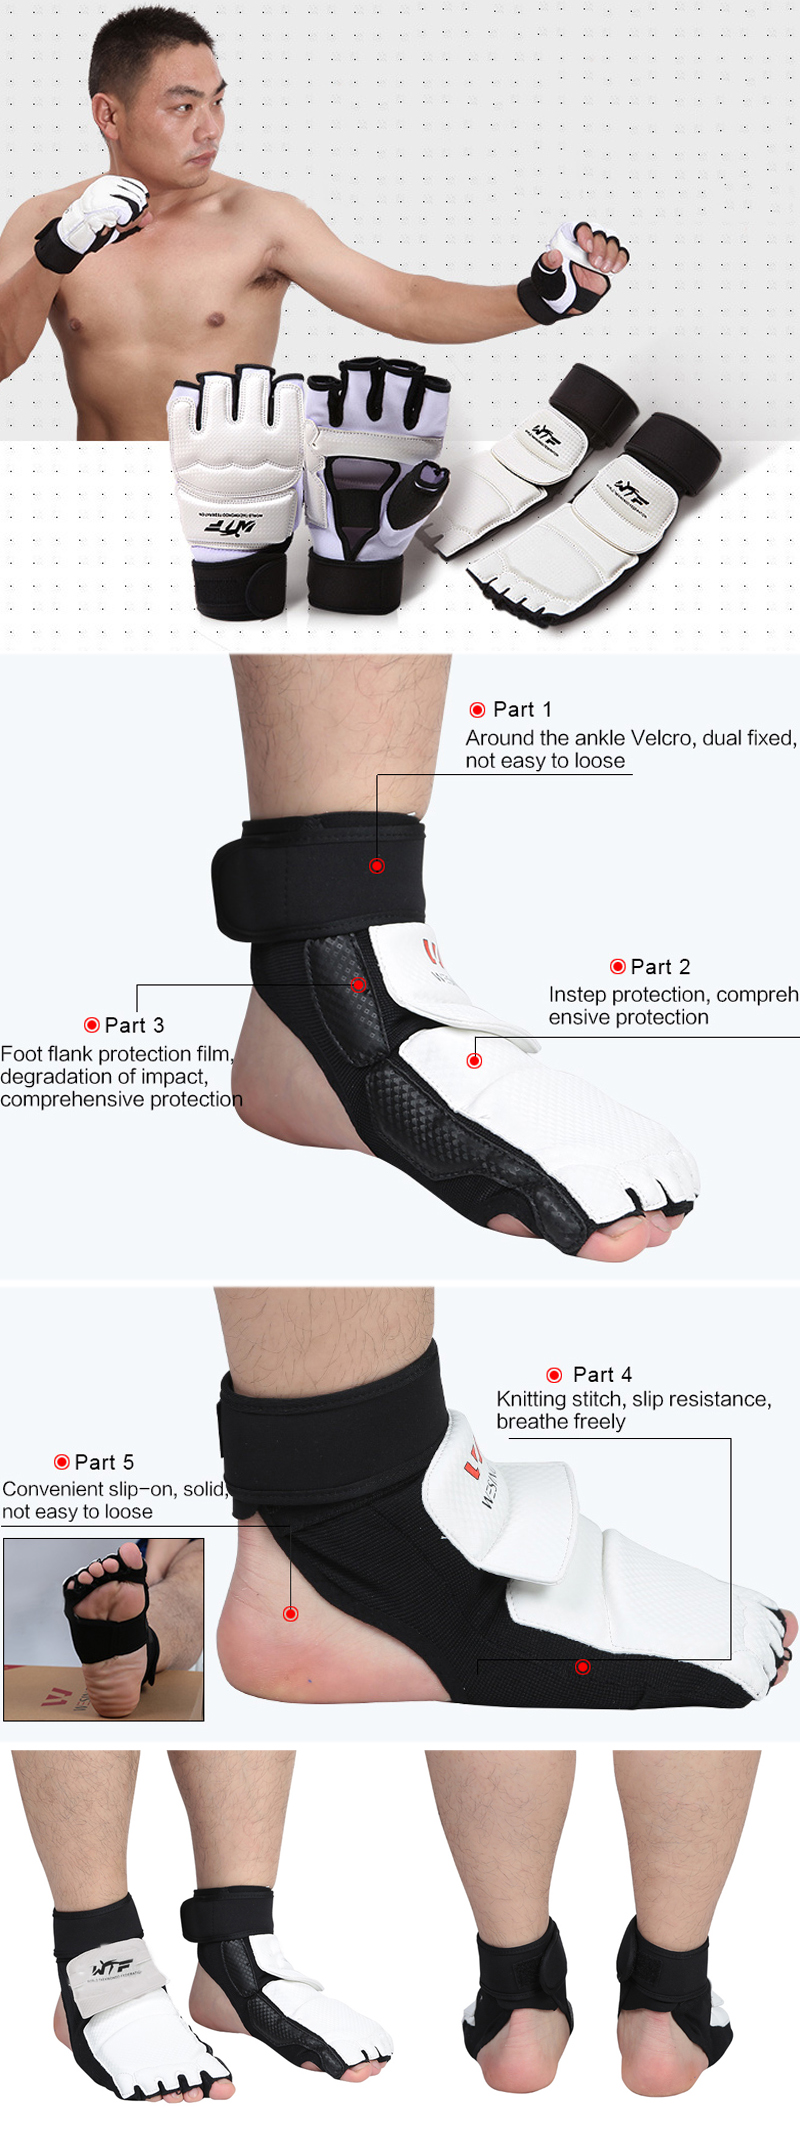 Sports Ankle Support Taekwondo Instep Protective Safety Gears Outdoor Sport Training Protector Equipment